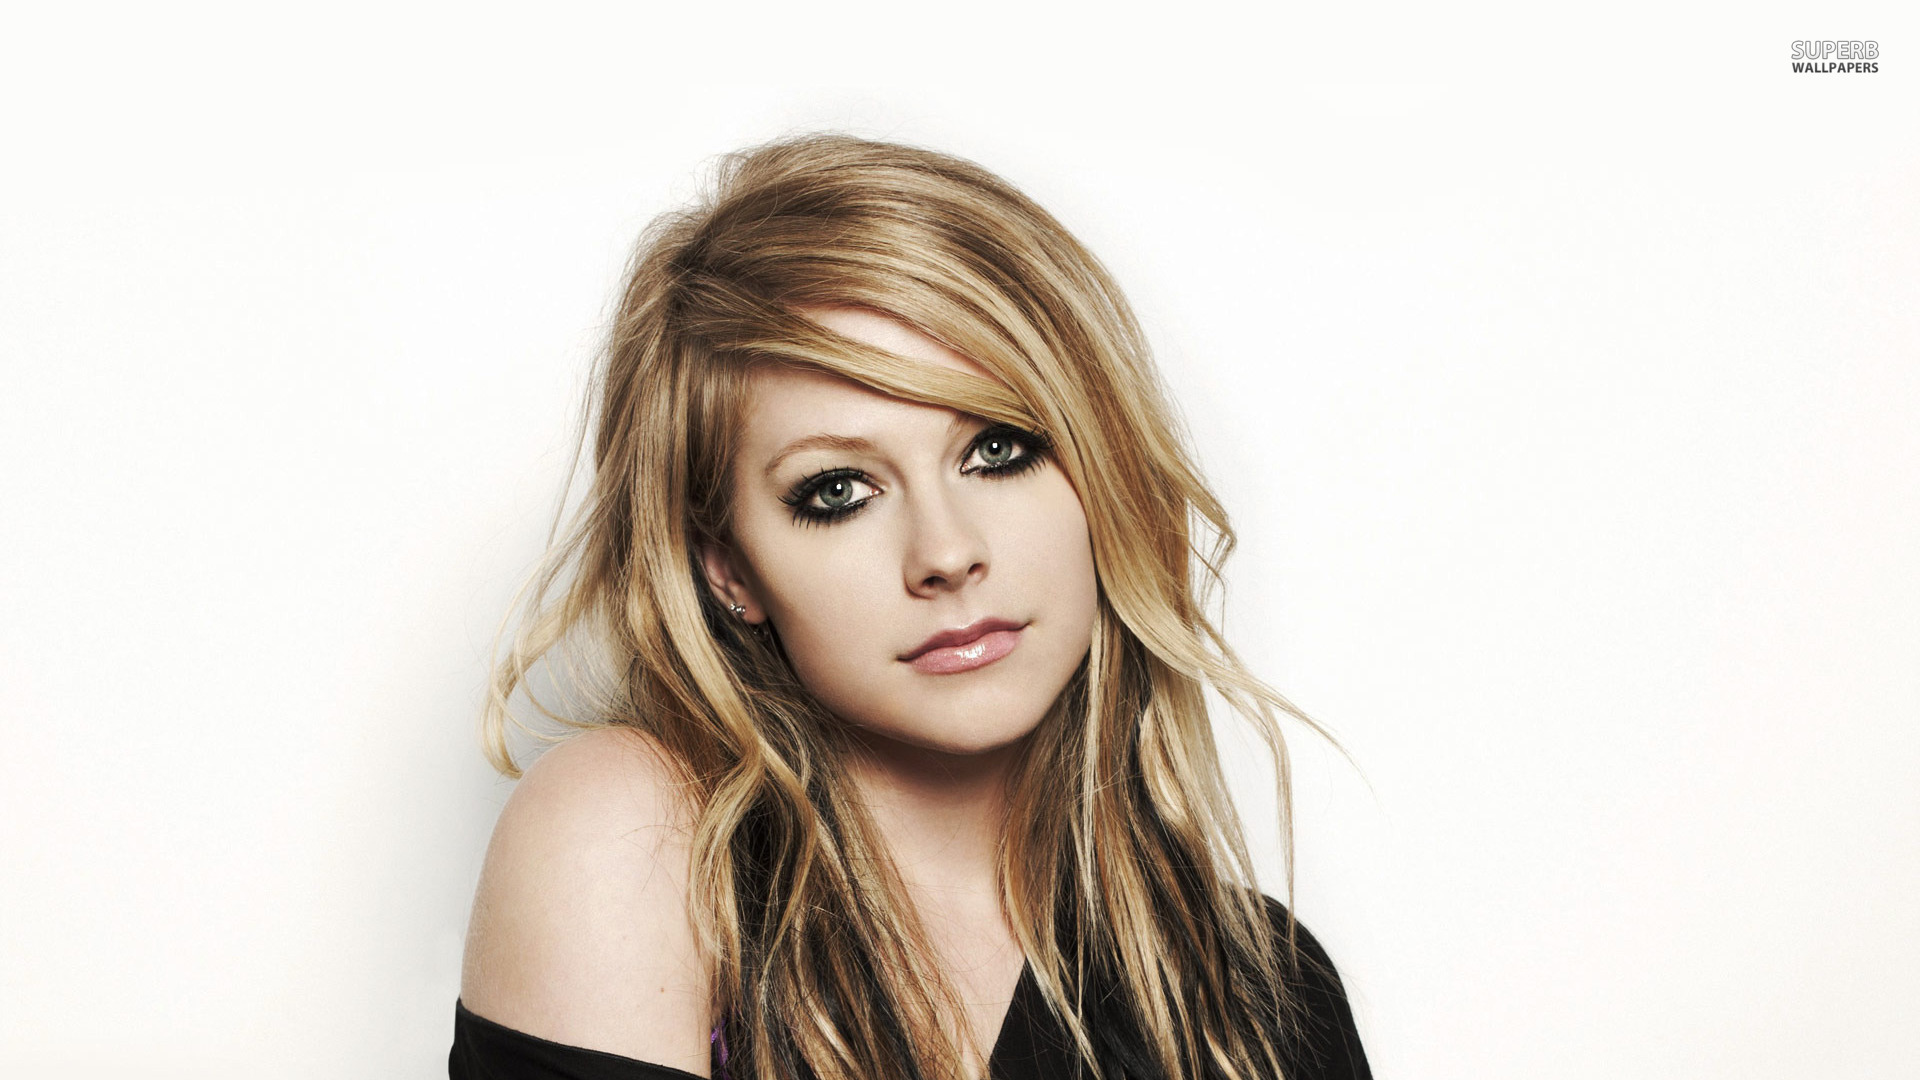 Avril lavigne wallpapers high quality download free avril lavigne wallpapers voltagebd Gallery